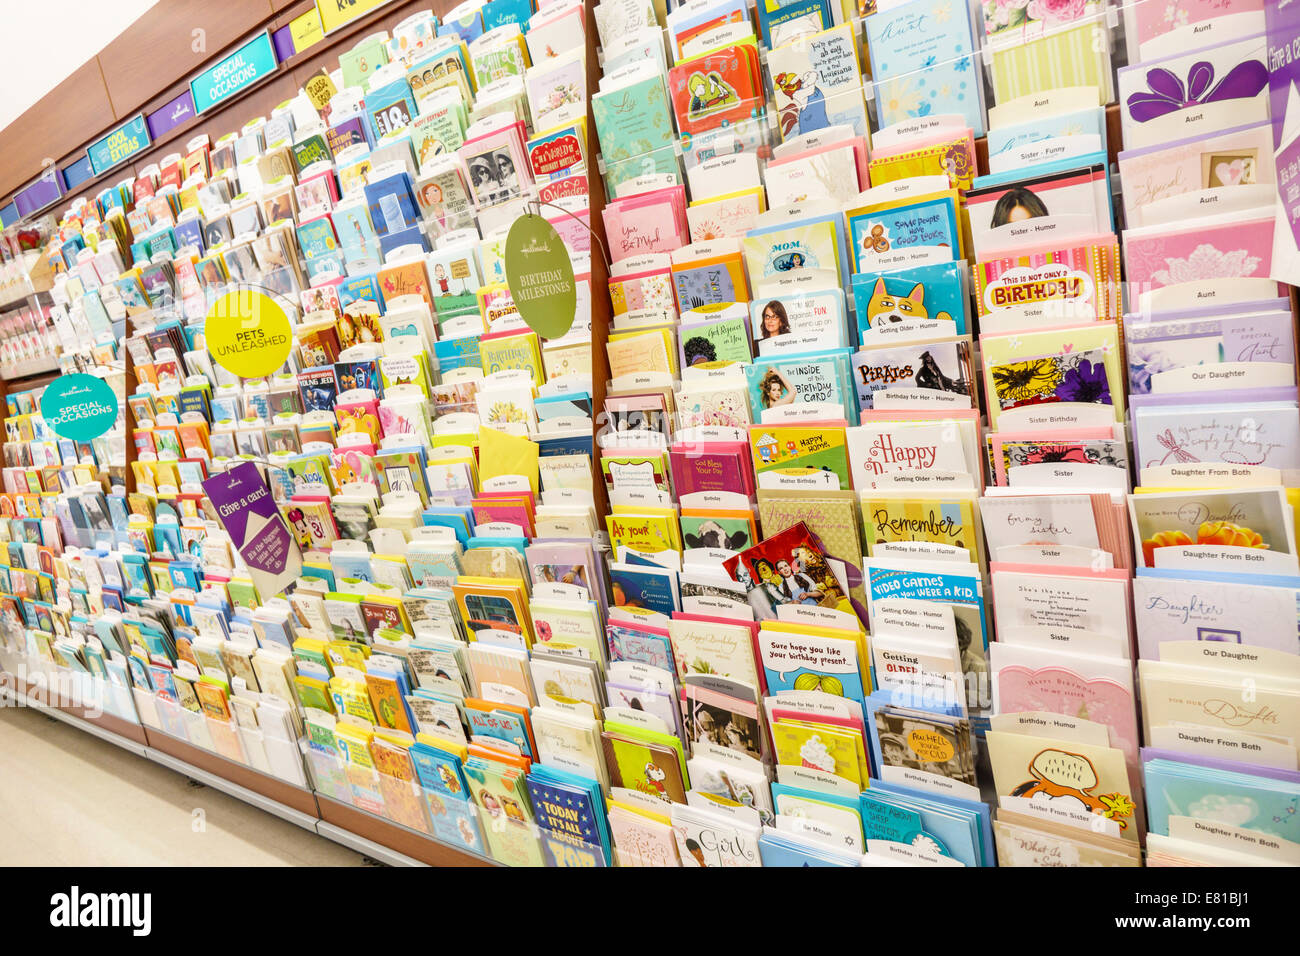 Miami Beach Florida Walgreens Greeting Stock Photos & Miami Beach ...